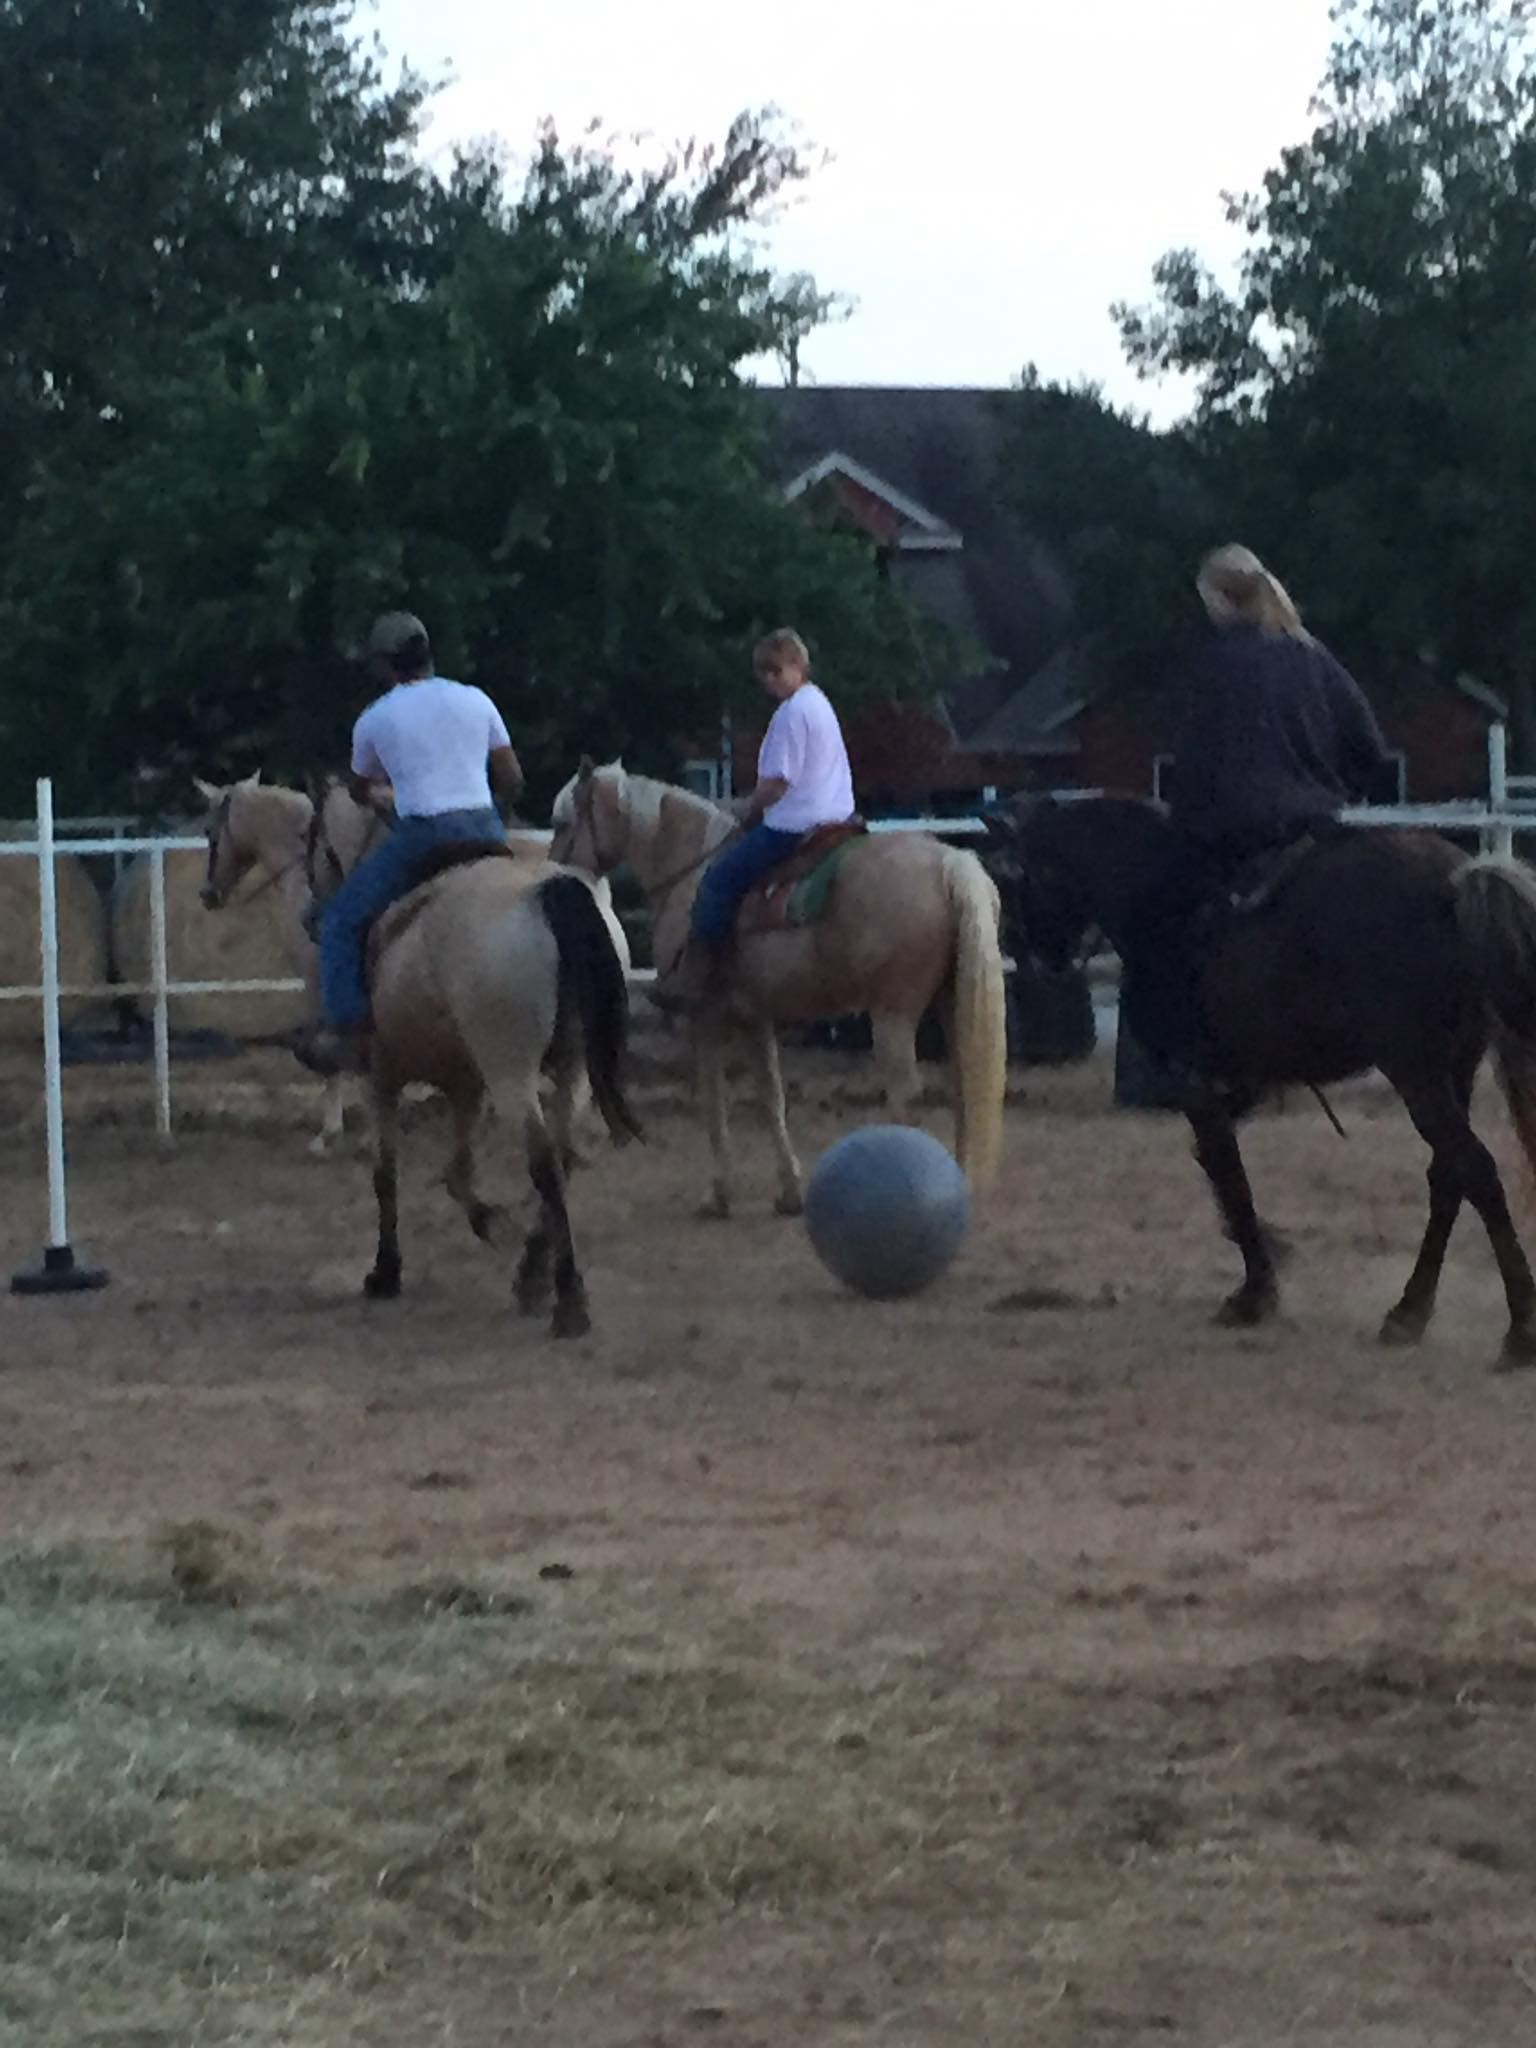 Soccer on Horseback